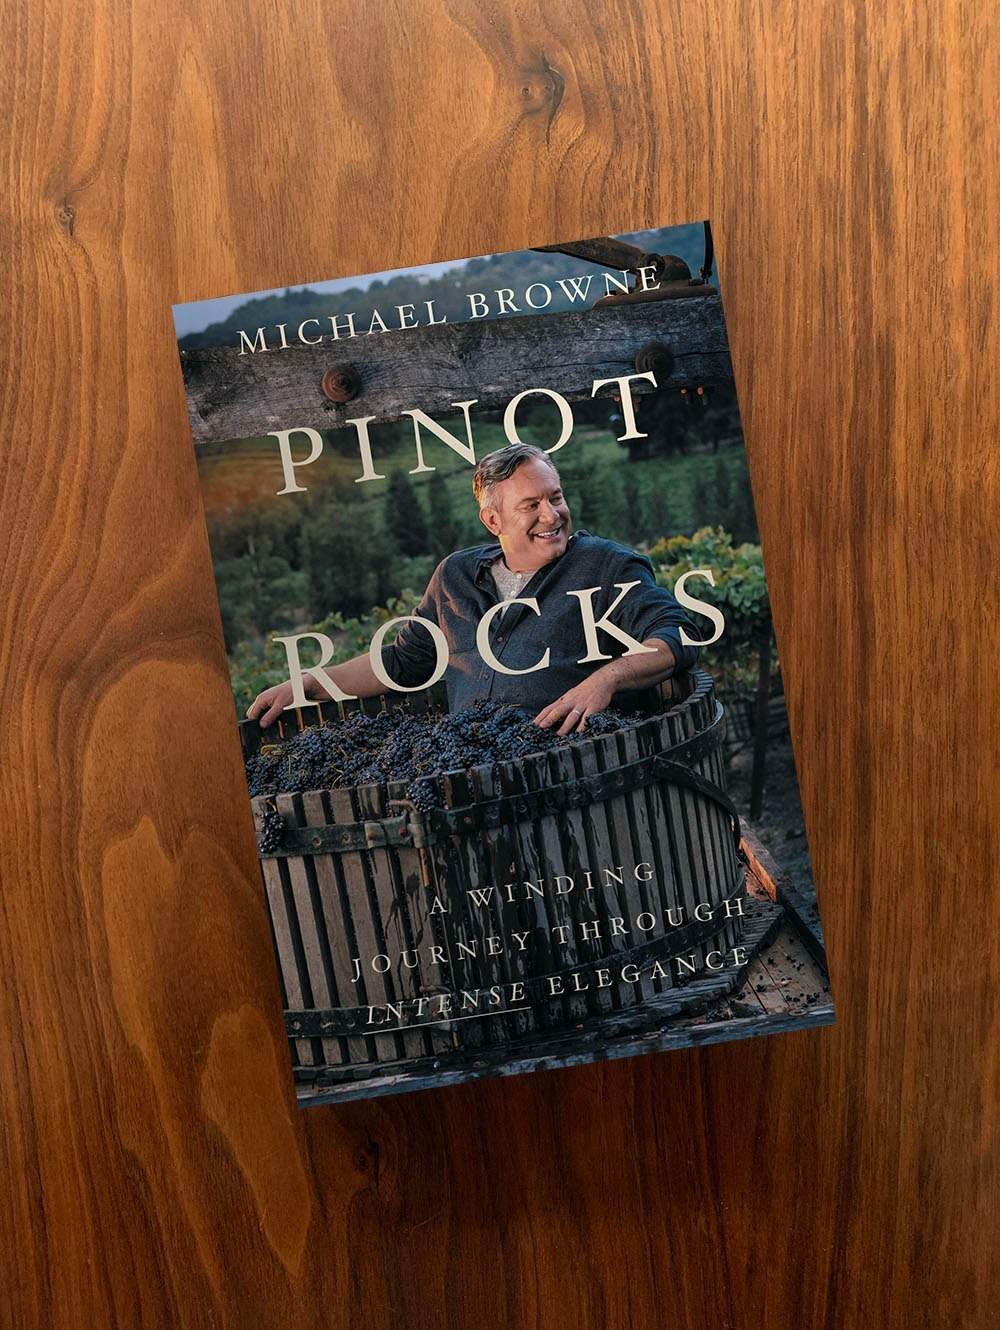 Cover of the Michael Browne Book Pinot Rocks with him sitting in a vat of grapes